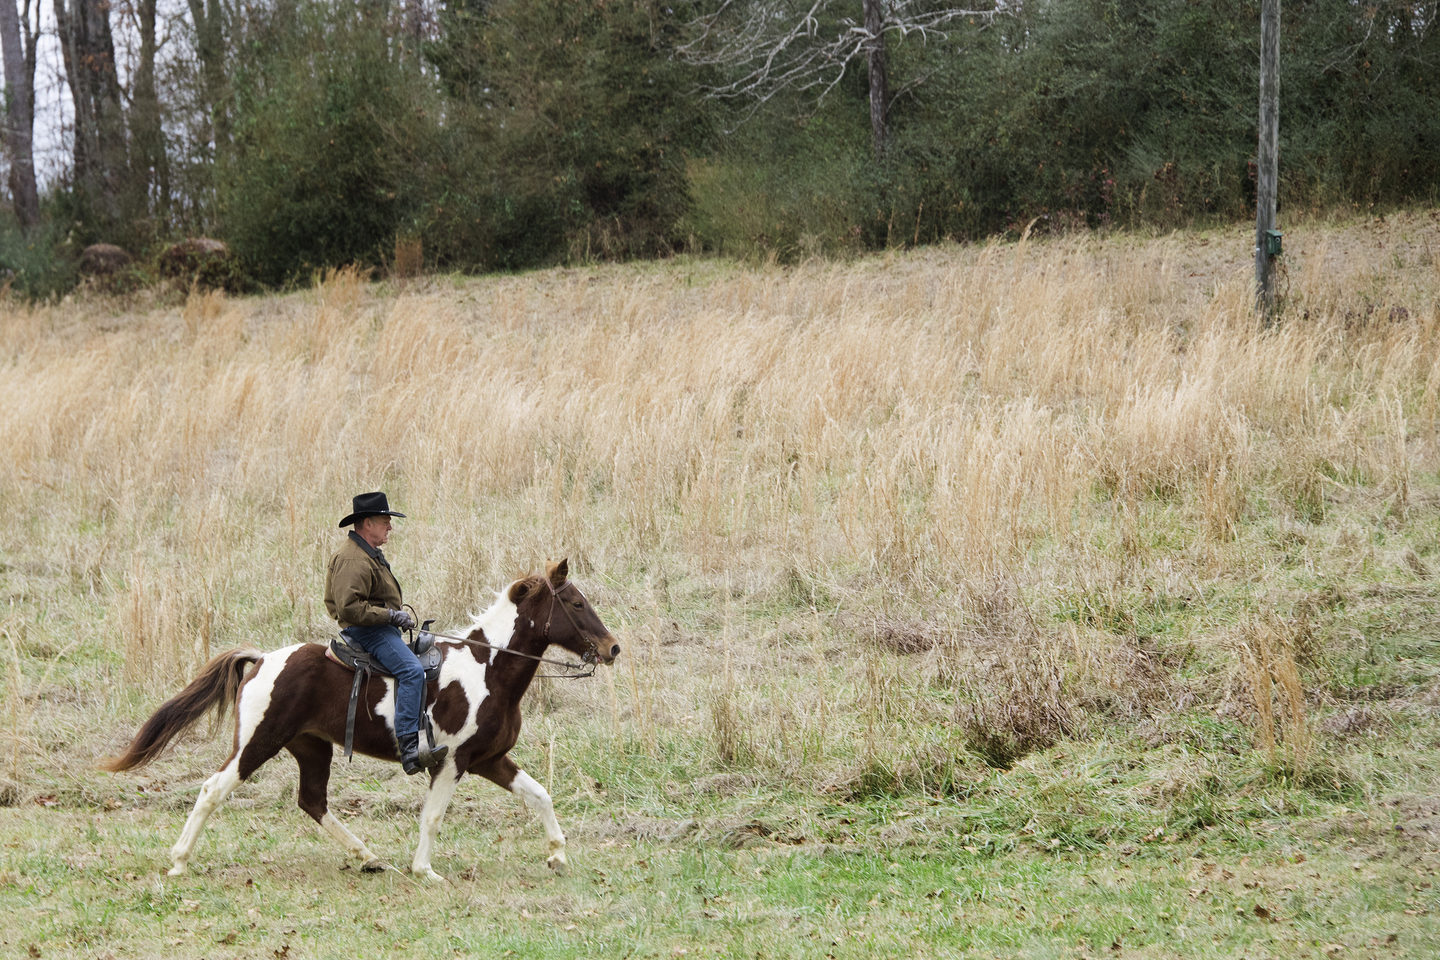 Republican Senatorial candidate Roy Moore rides his horse, Sassy, to the polling station to vote in  Gallant.